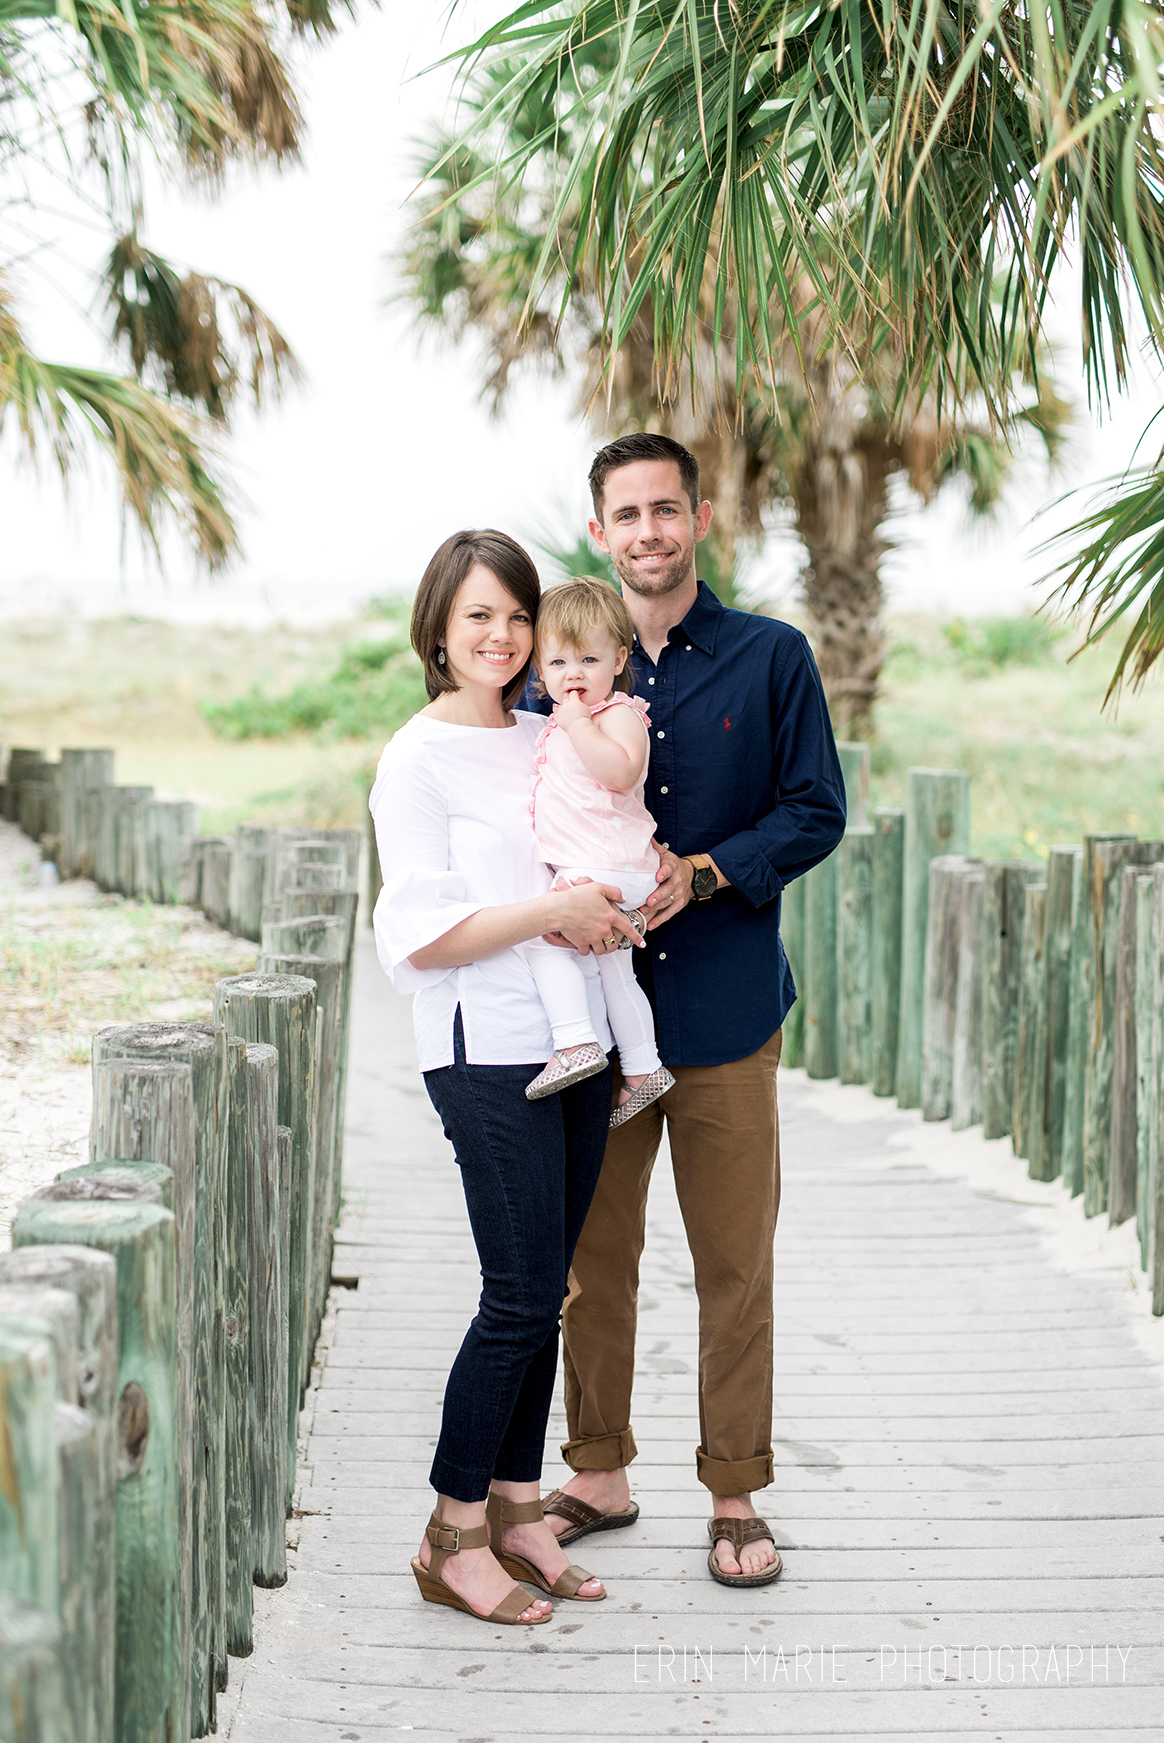 Sandkey_Beach_Family_Photographer_02.jpg